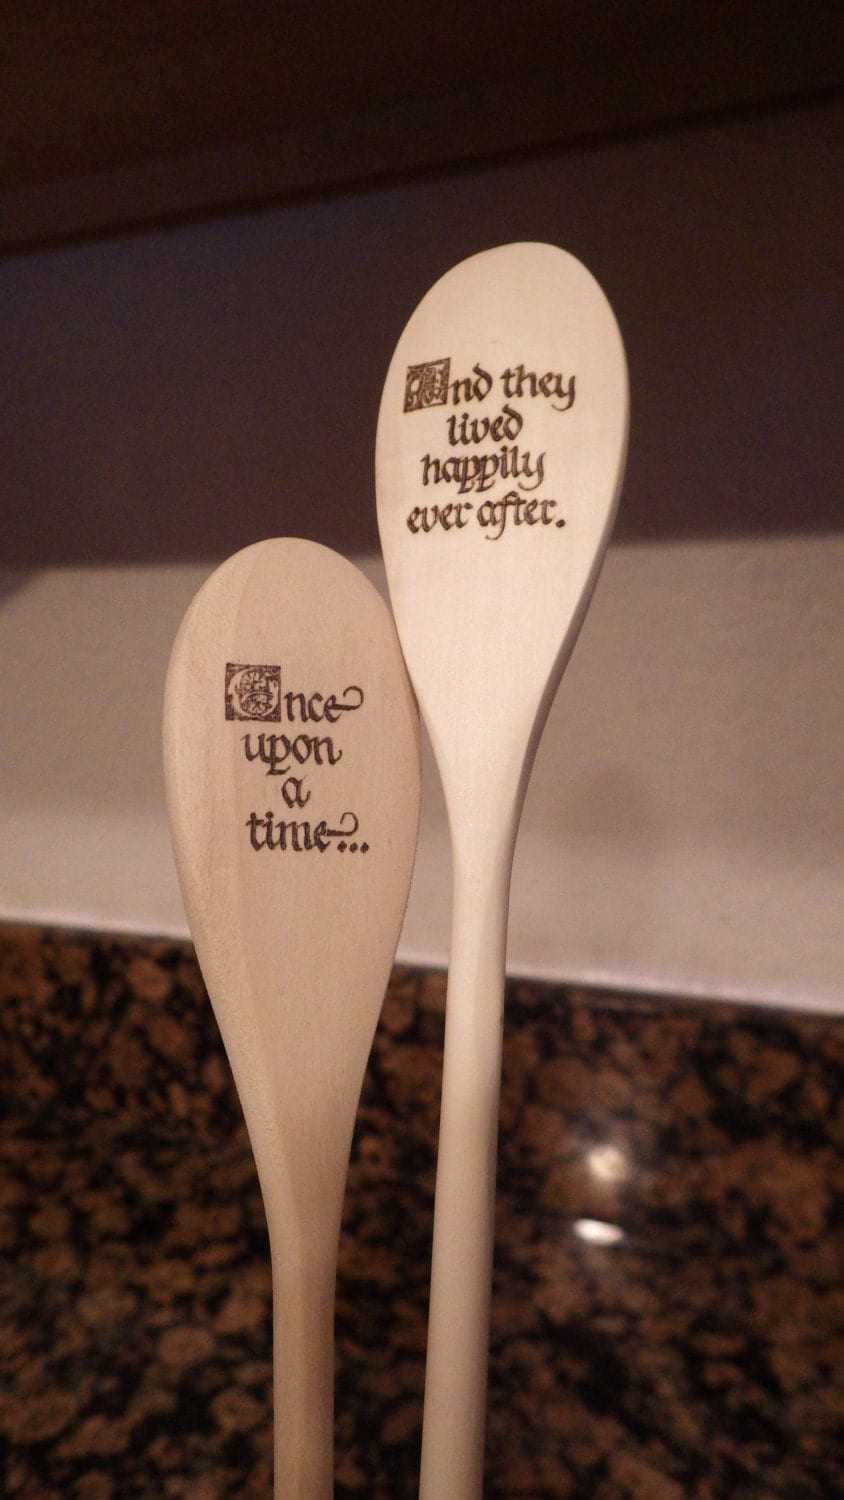 Solid Wood Spoon With Woodburning Design Once Upon A Time And